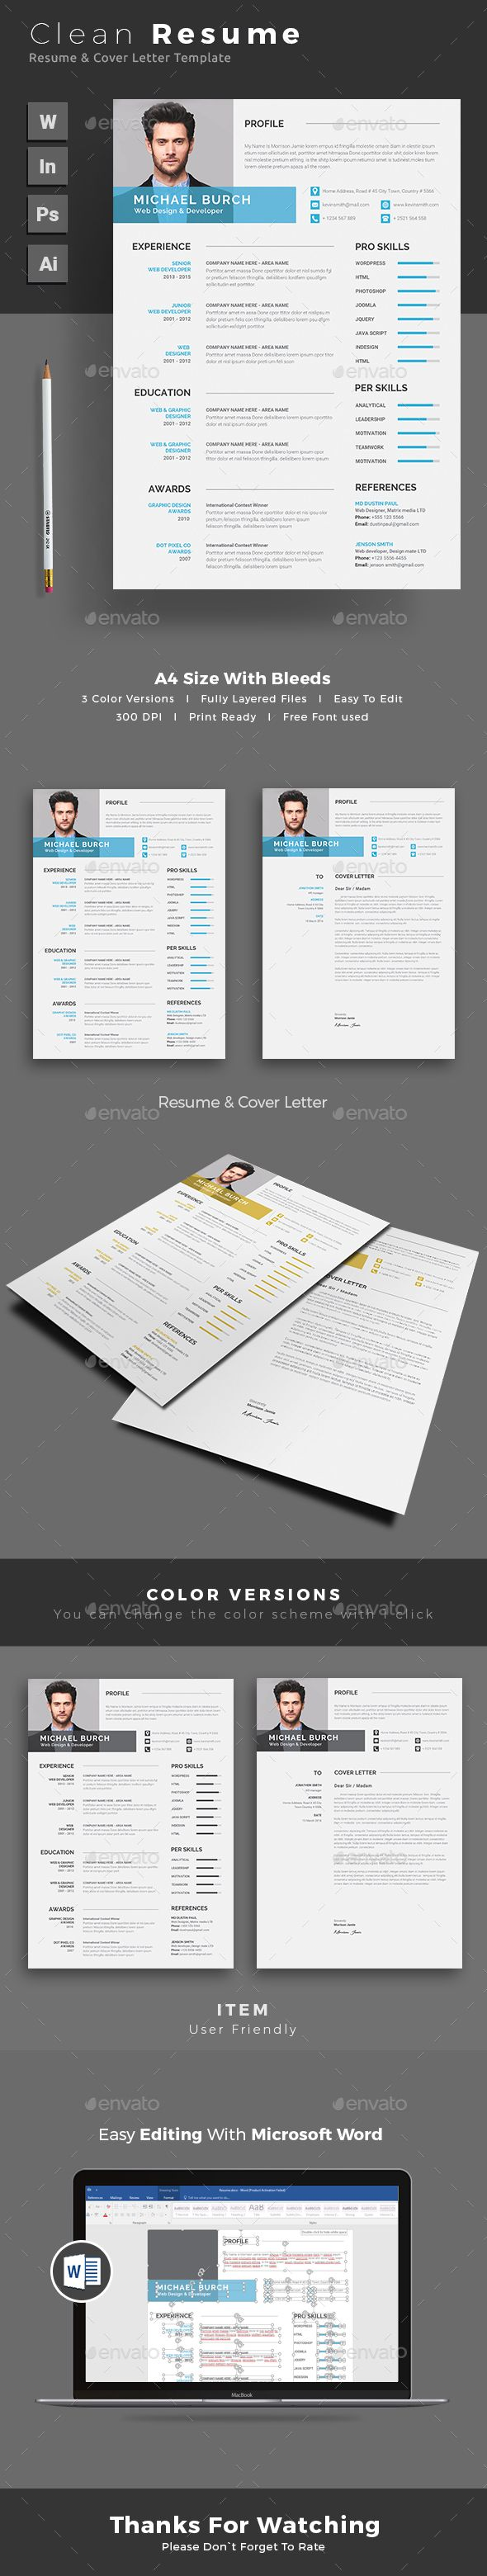 Best Cv Images On   Cv Resume Template Cv Template And